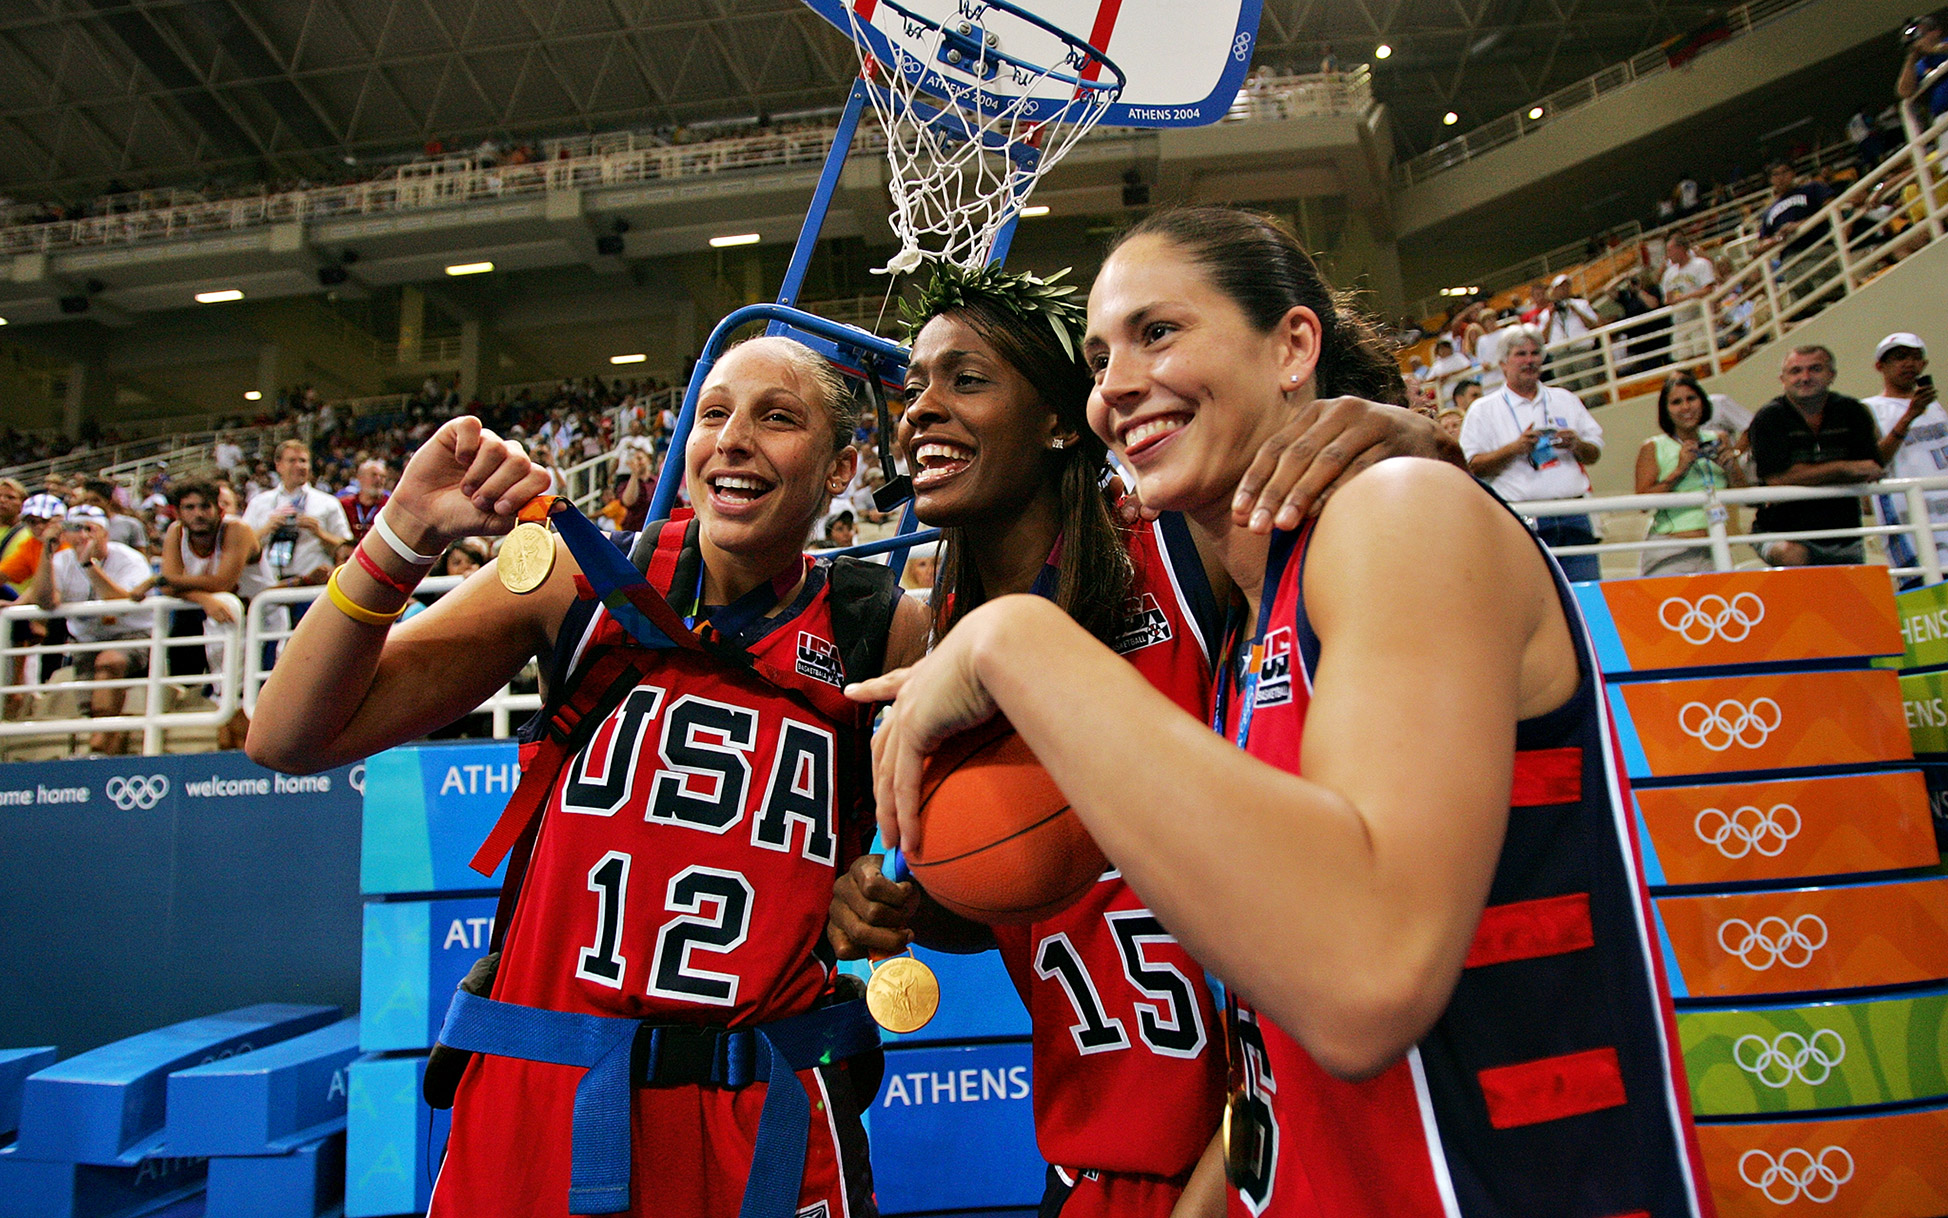 Diana Taurasi, left, won the first of her three Olympic gold medals in Athens in 2004. Here, she's celebrating with Swin Cash, center, and Sue Bird.